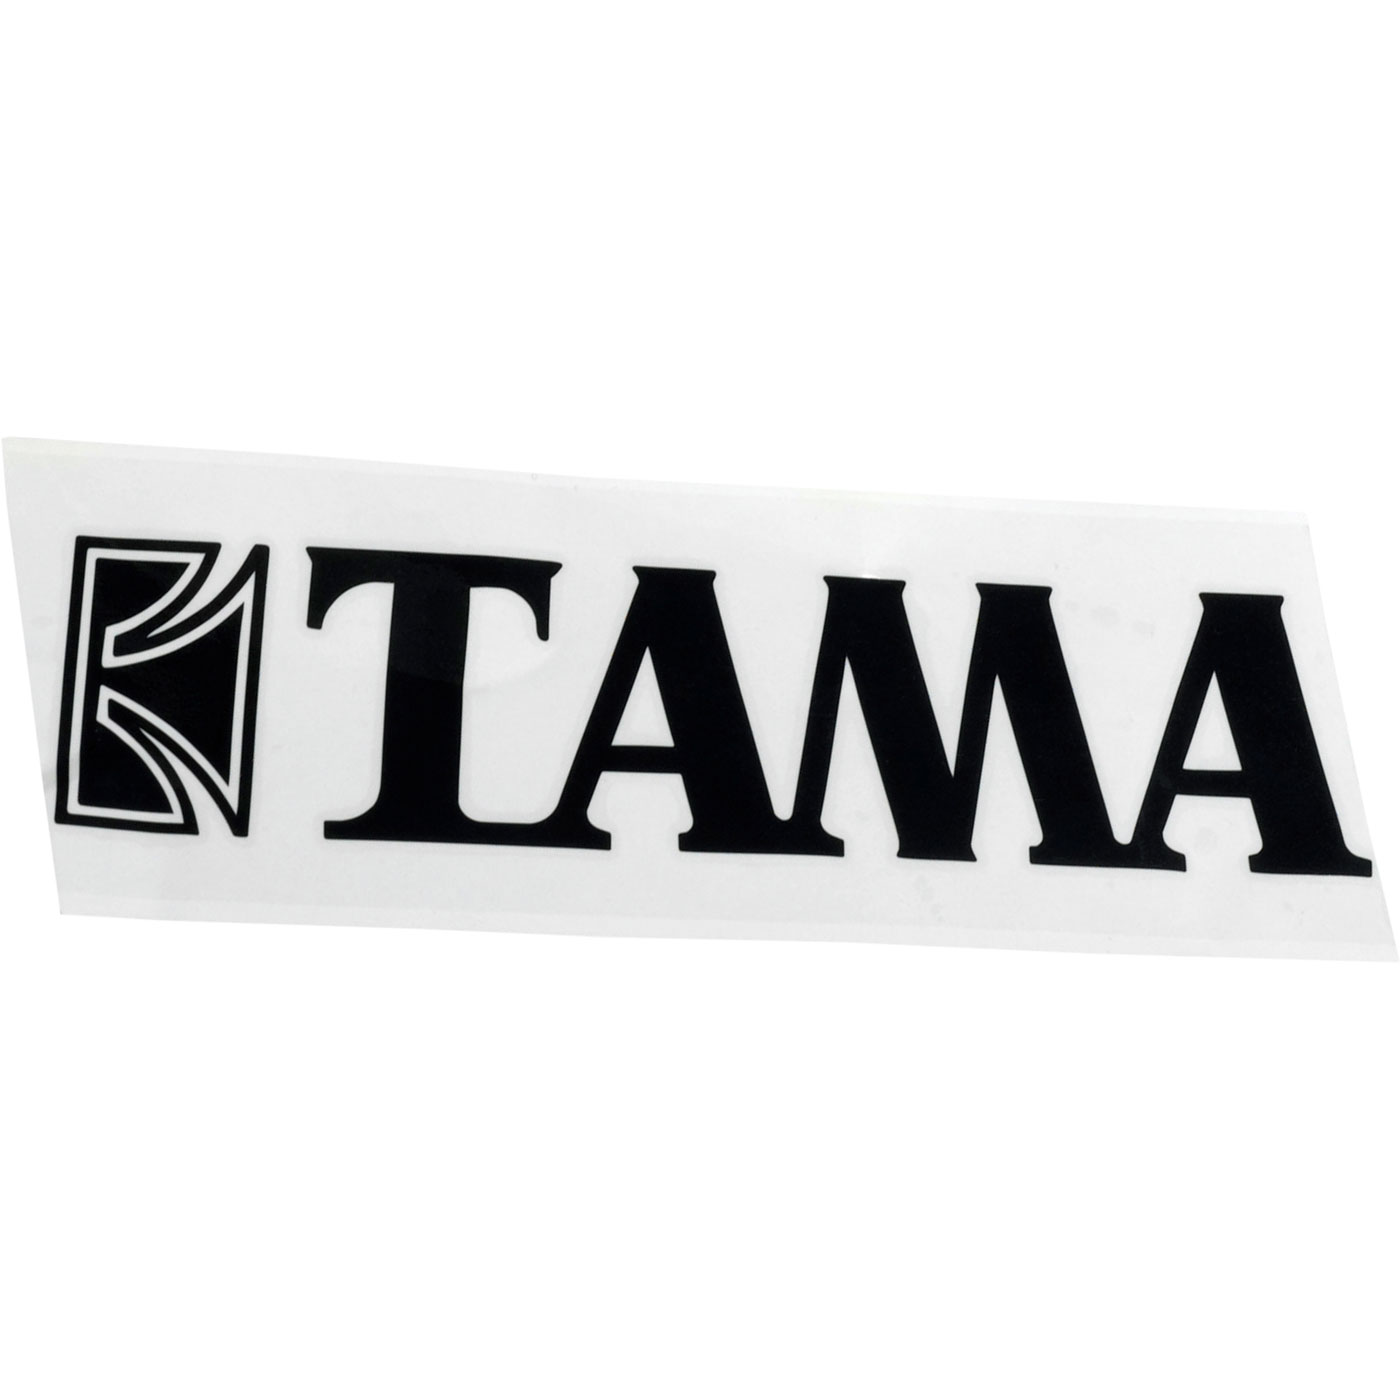 "Tama Black Logo Decal for 14"" - 22"" Bass Drums"